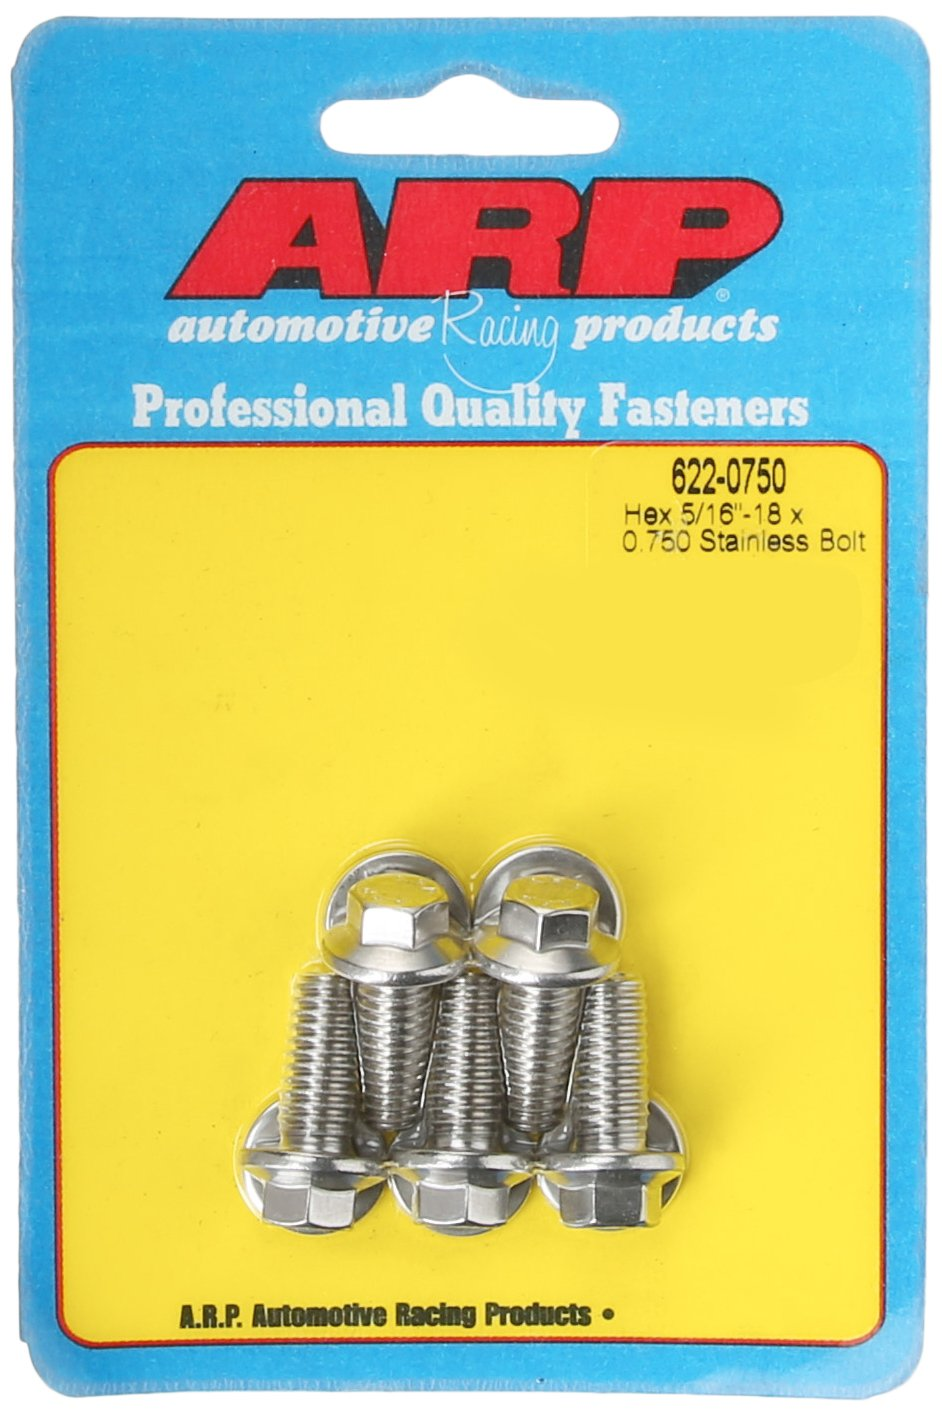 ARP 6220750 5-Pack Of Stainless Steel Hex Bolts, Size 5/16-18, 0.750 Under Head Length 622-0750